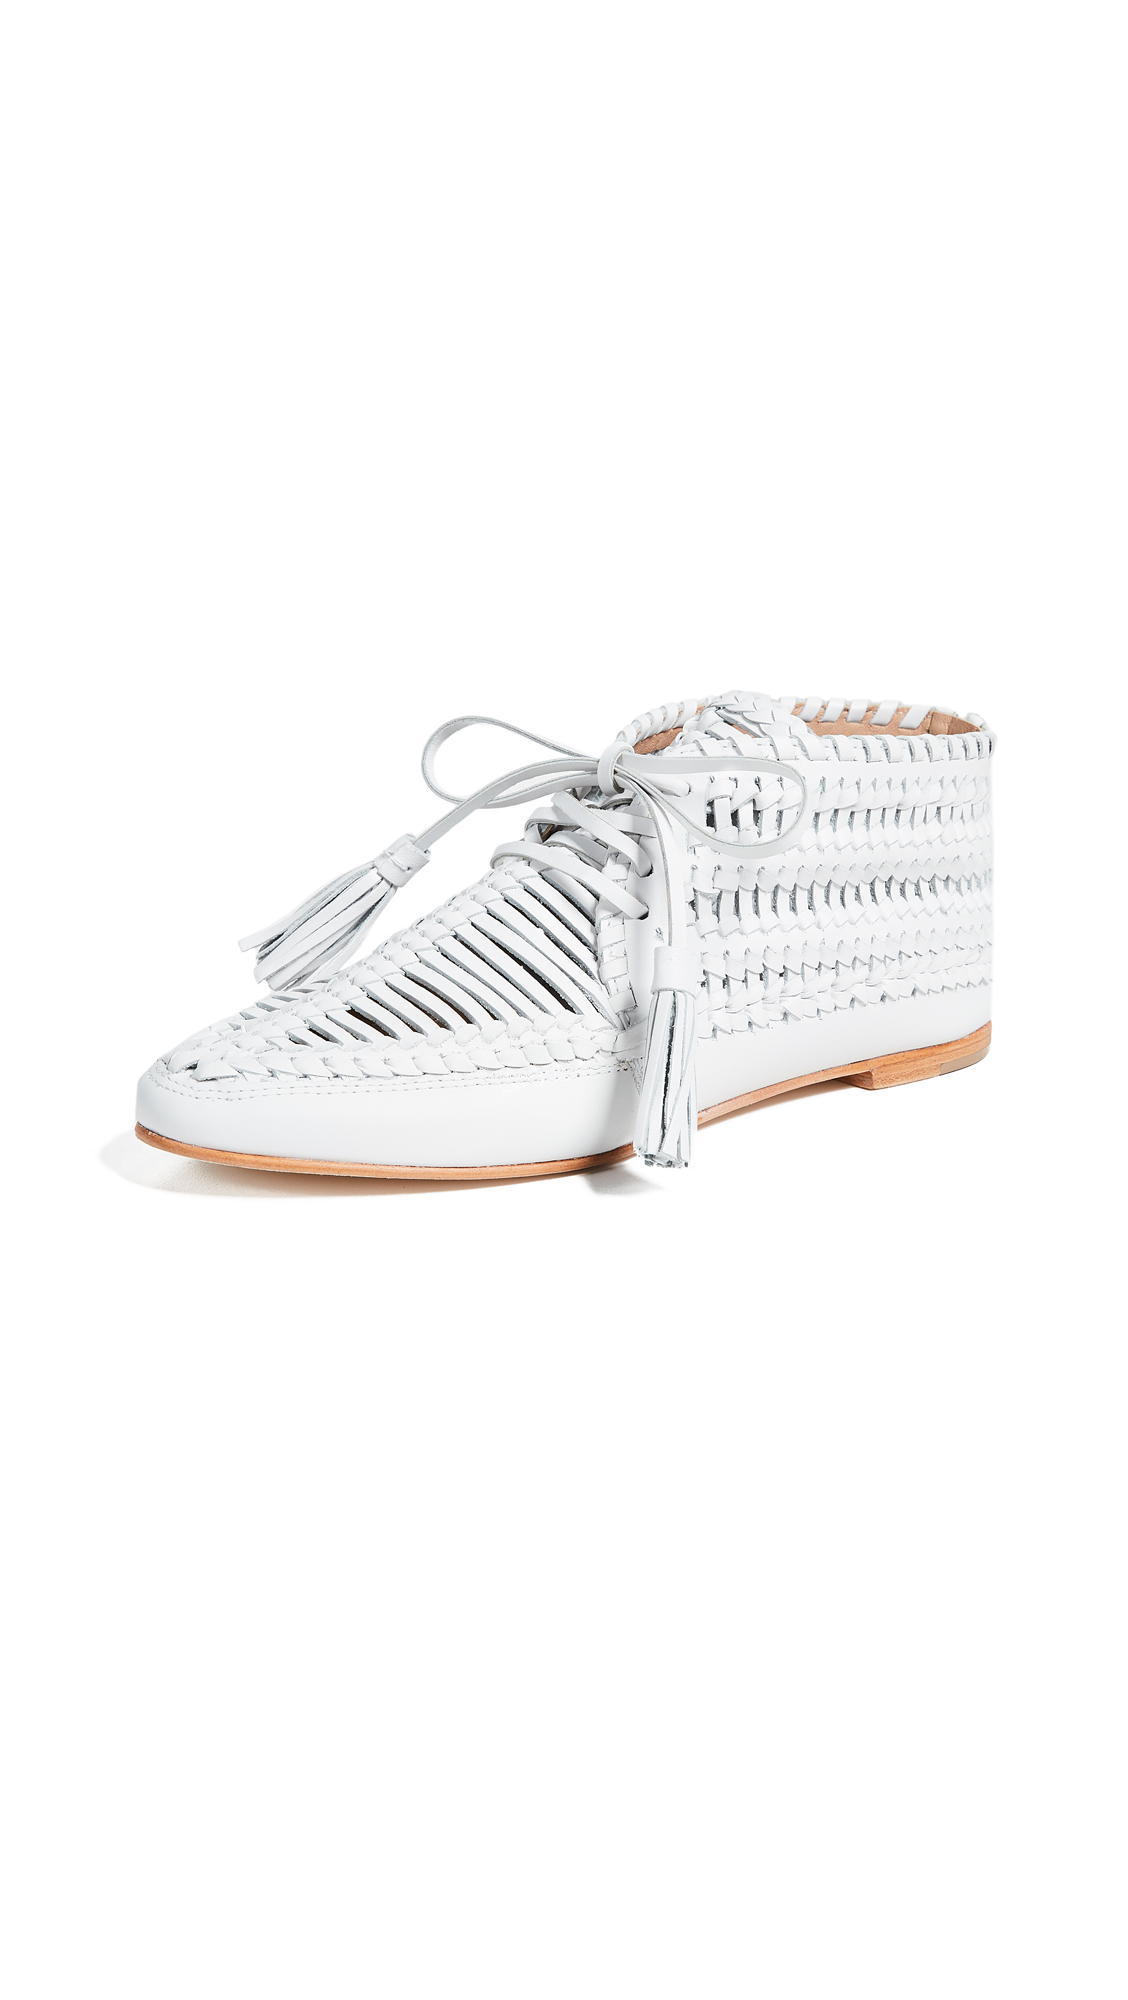 Ulla Johnson Nikola Moccasins - Chalk